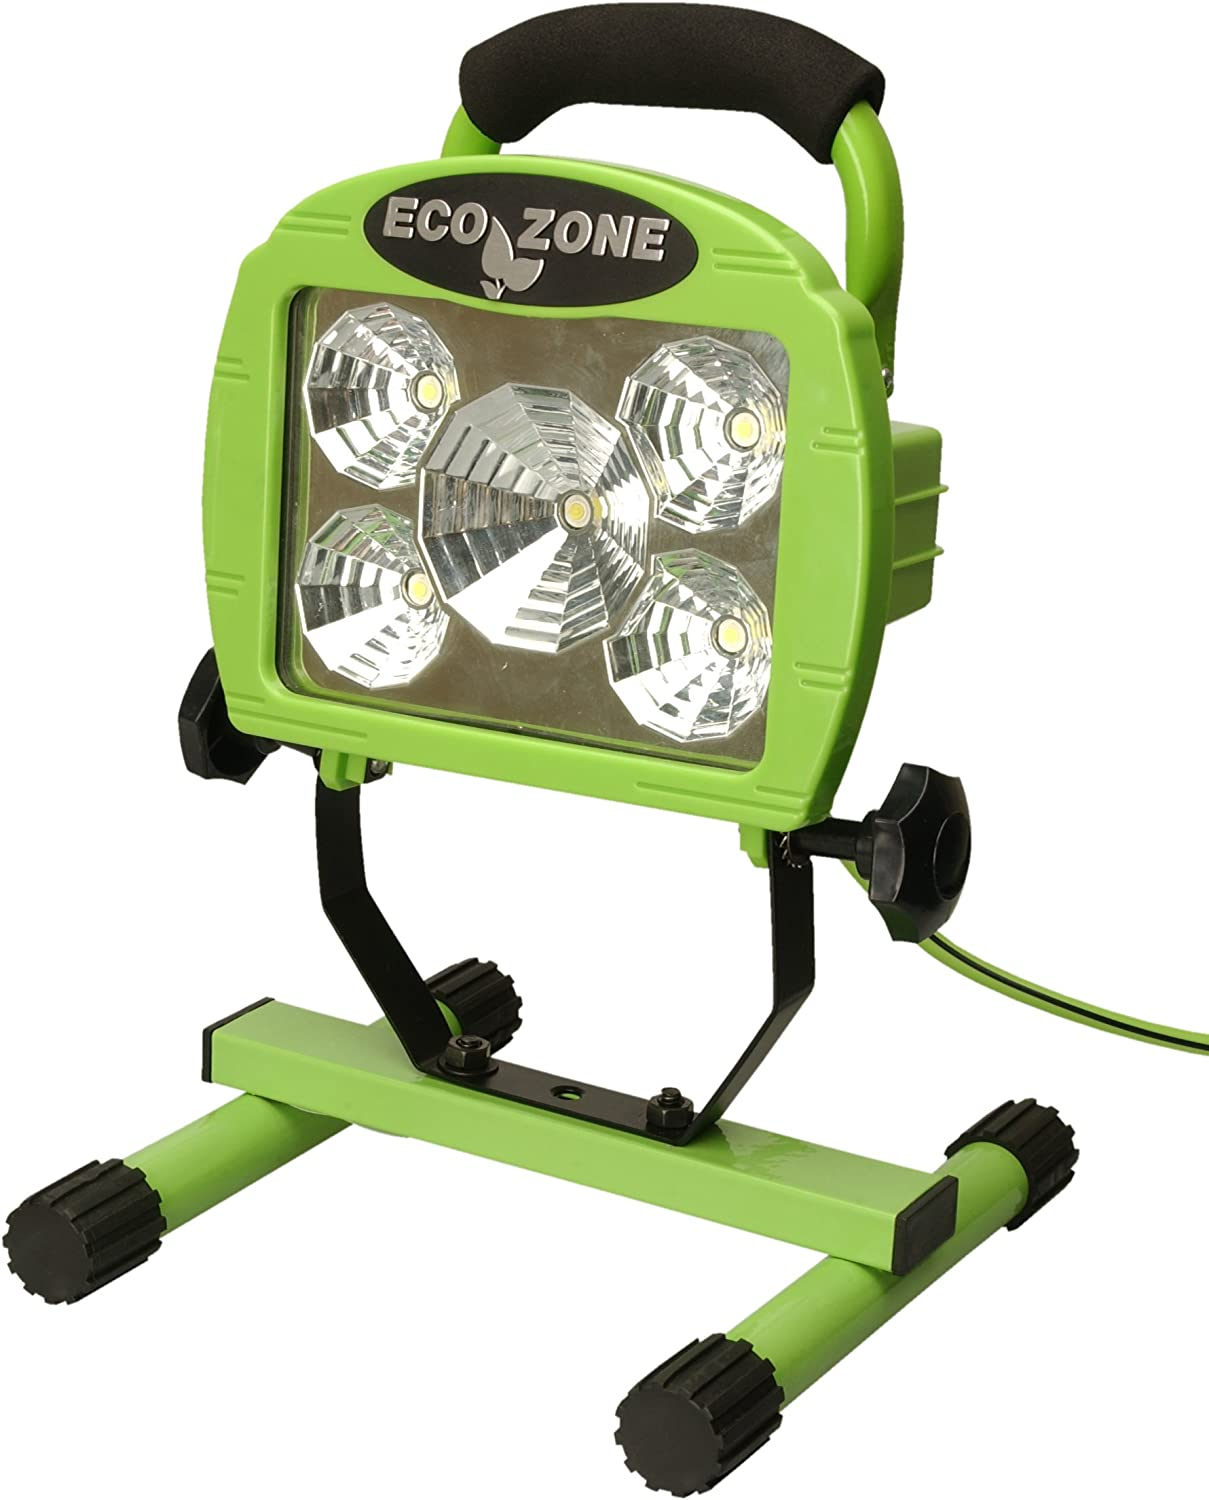 Designers Edge L1312 5x1W 70% OFF Outlet LED Worklight Green Free shipping on posting reviews 120-Volt